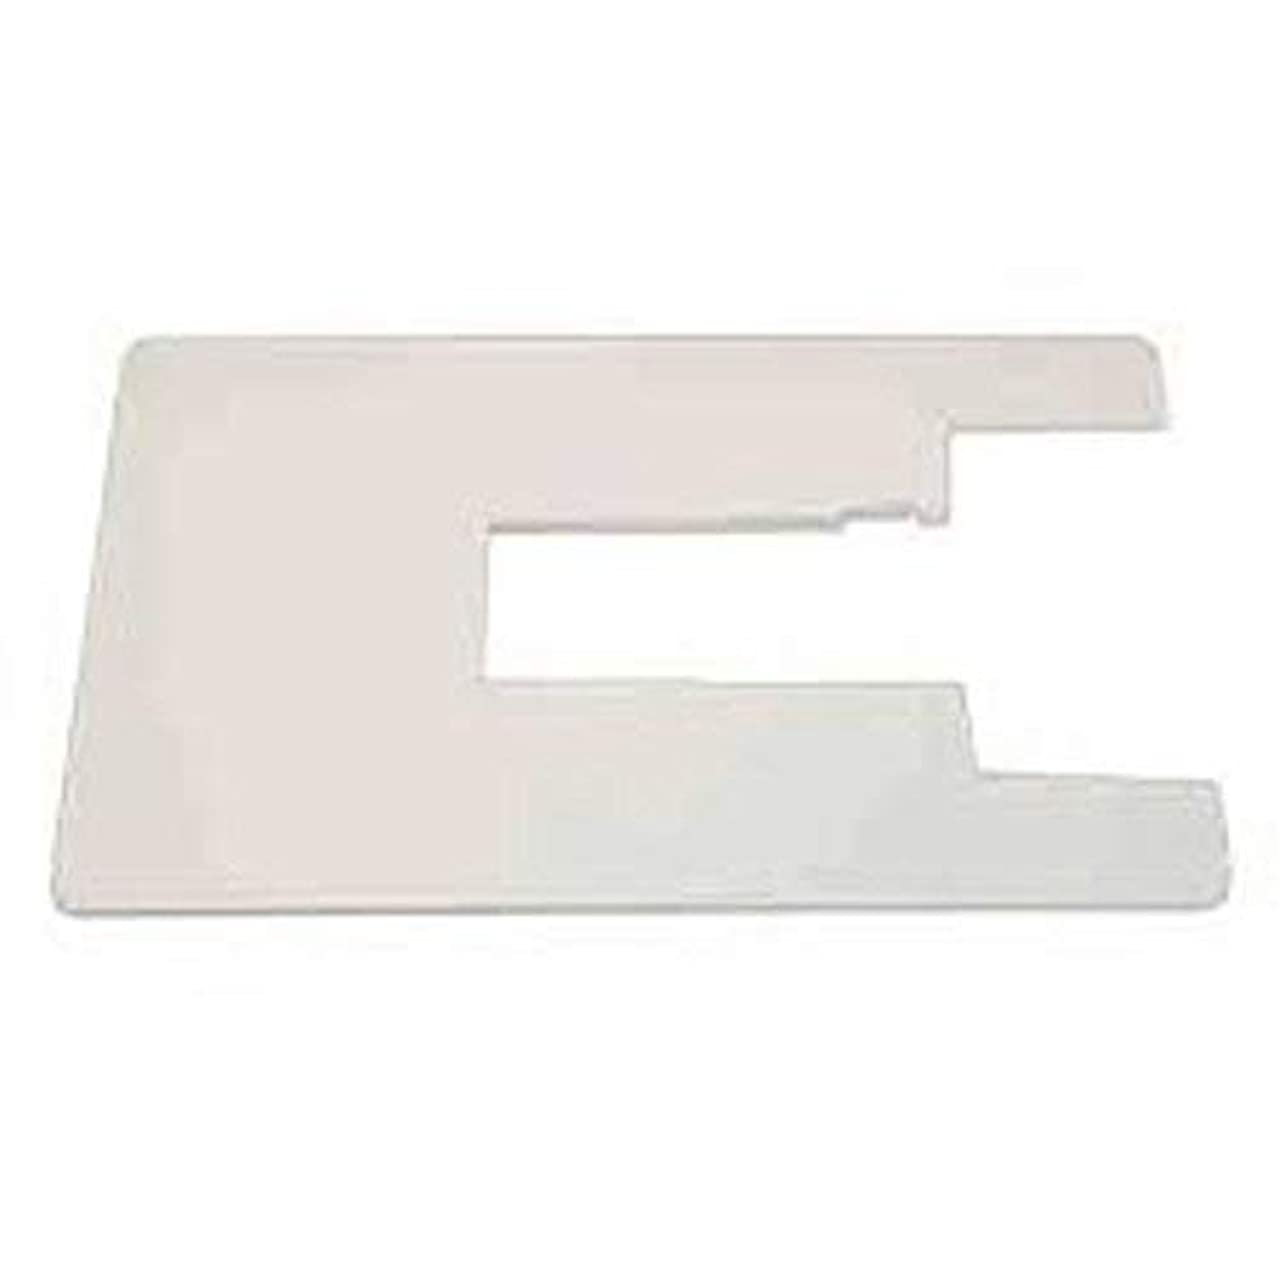 Janome Insert H Fits MC6700P for Janome Universal Table